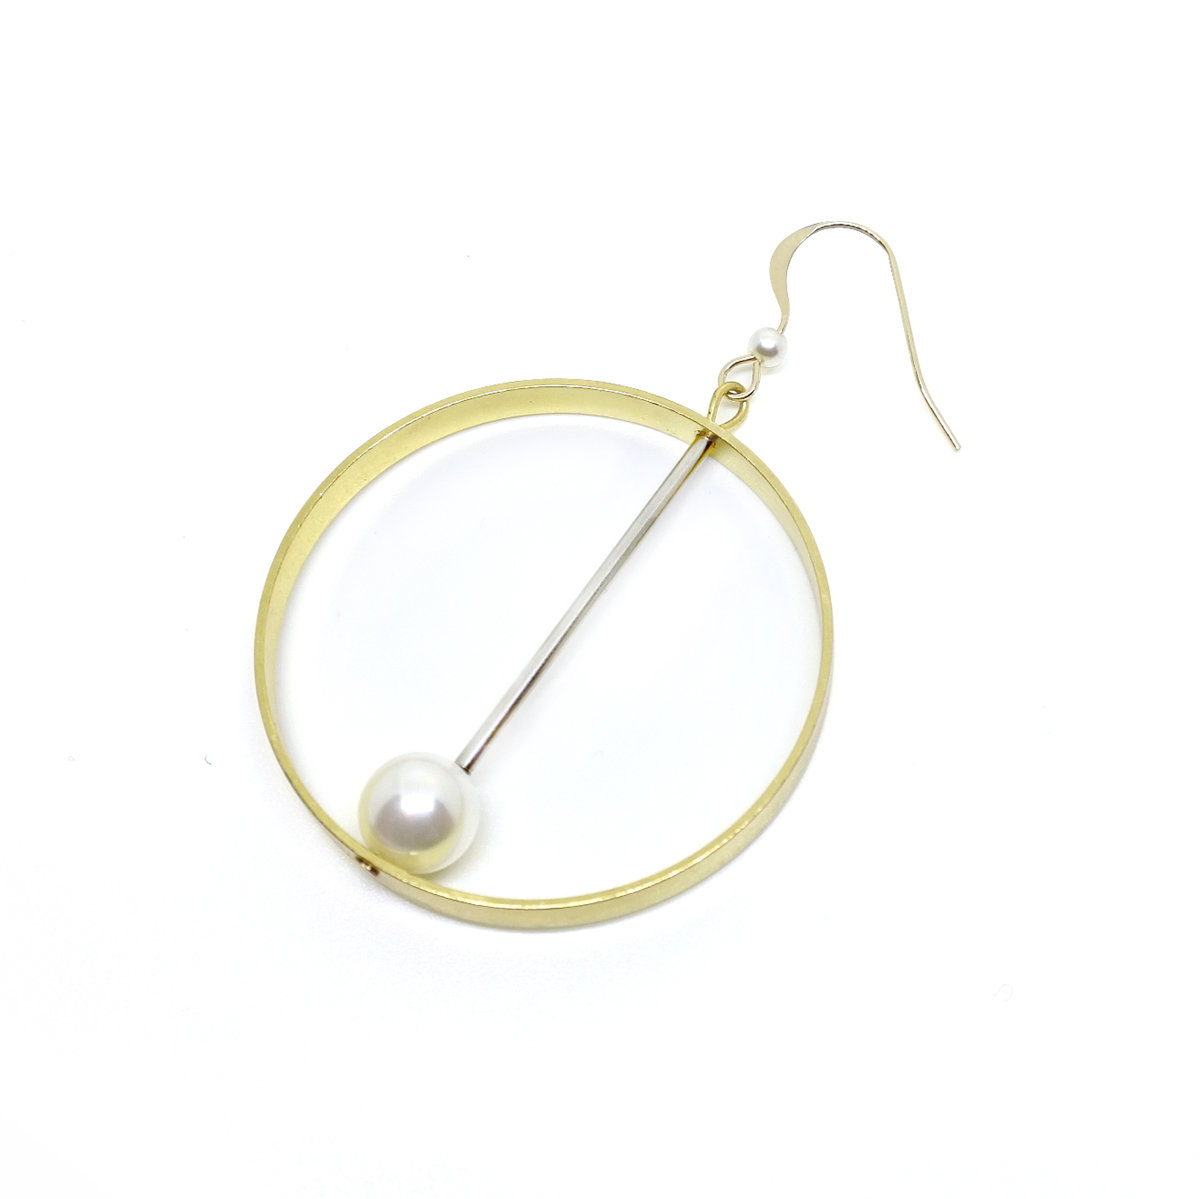 Asymmetrical earring — designer shop, Gifts For Her, Fashion Accessories